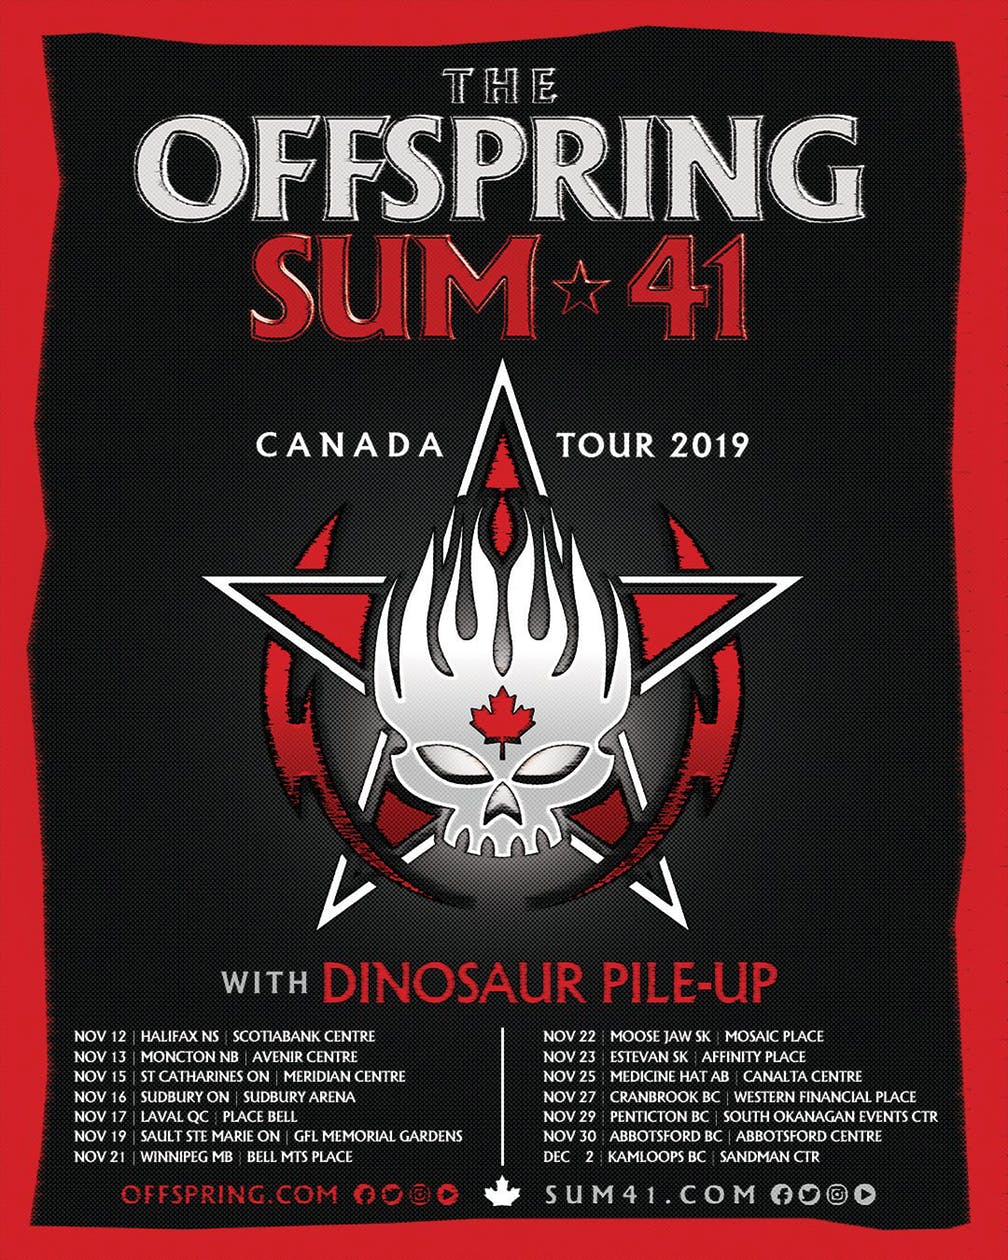 The Offspring & SUM 41 to Rock the Abbotsford Centre on November 30